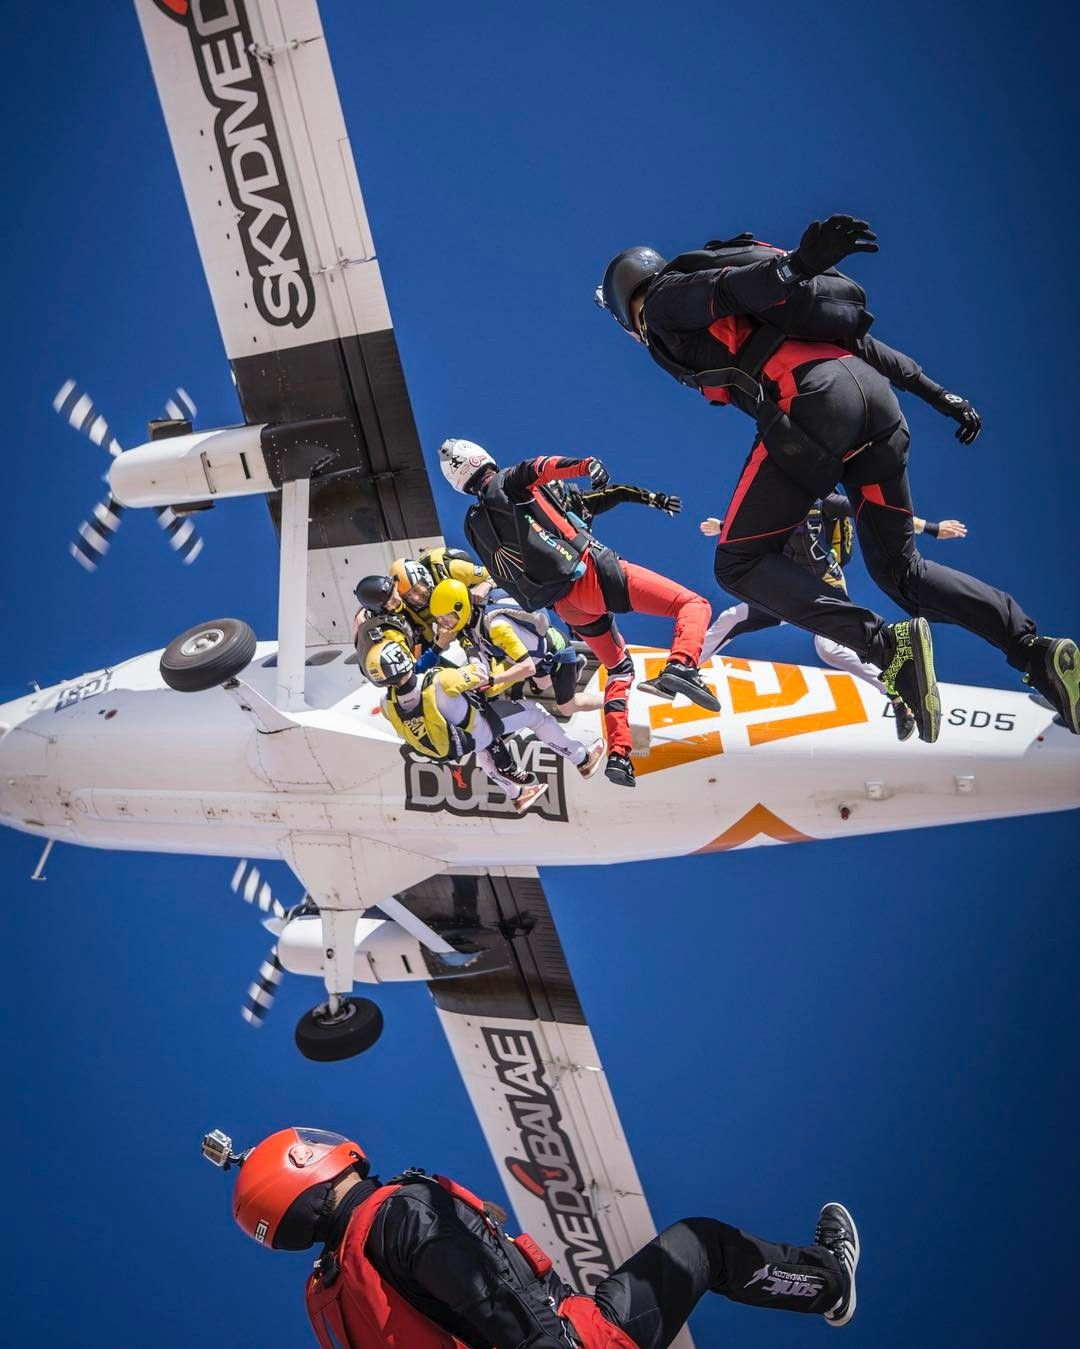 Why Do You Exit The Plane Max Haim Skydive Dubai Sports Skydiving Extreme Sports Outdoors Adventure